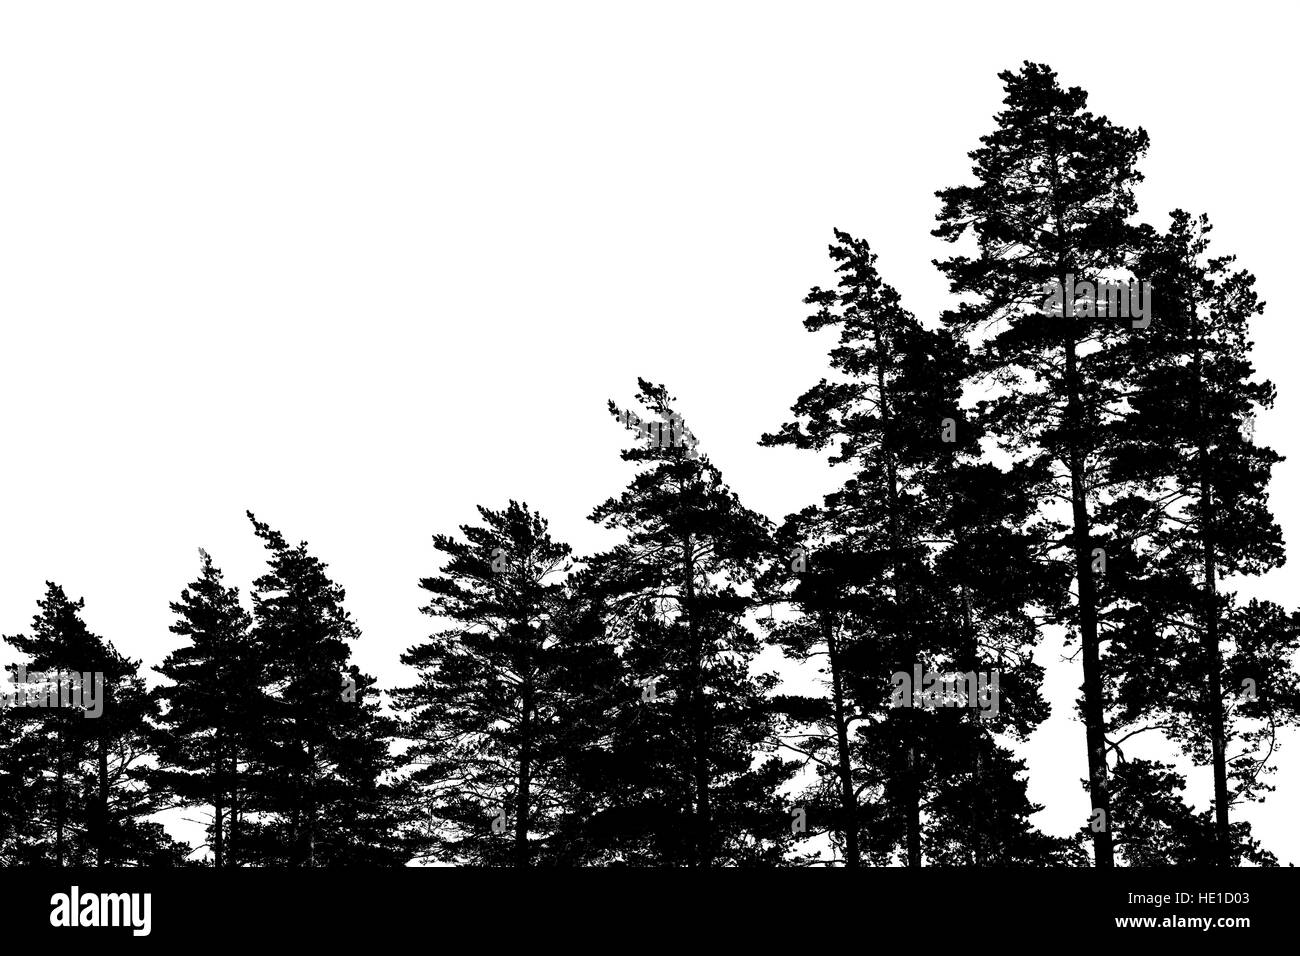 Black pine tree silhouettes isolated on white, forest background - Stock Image